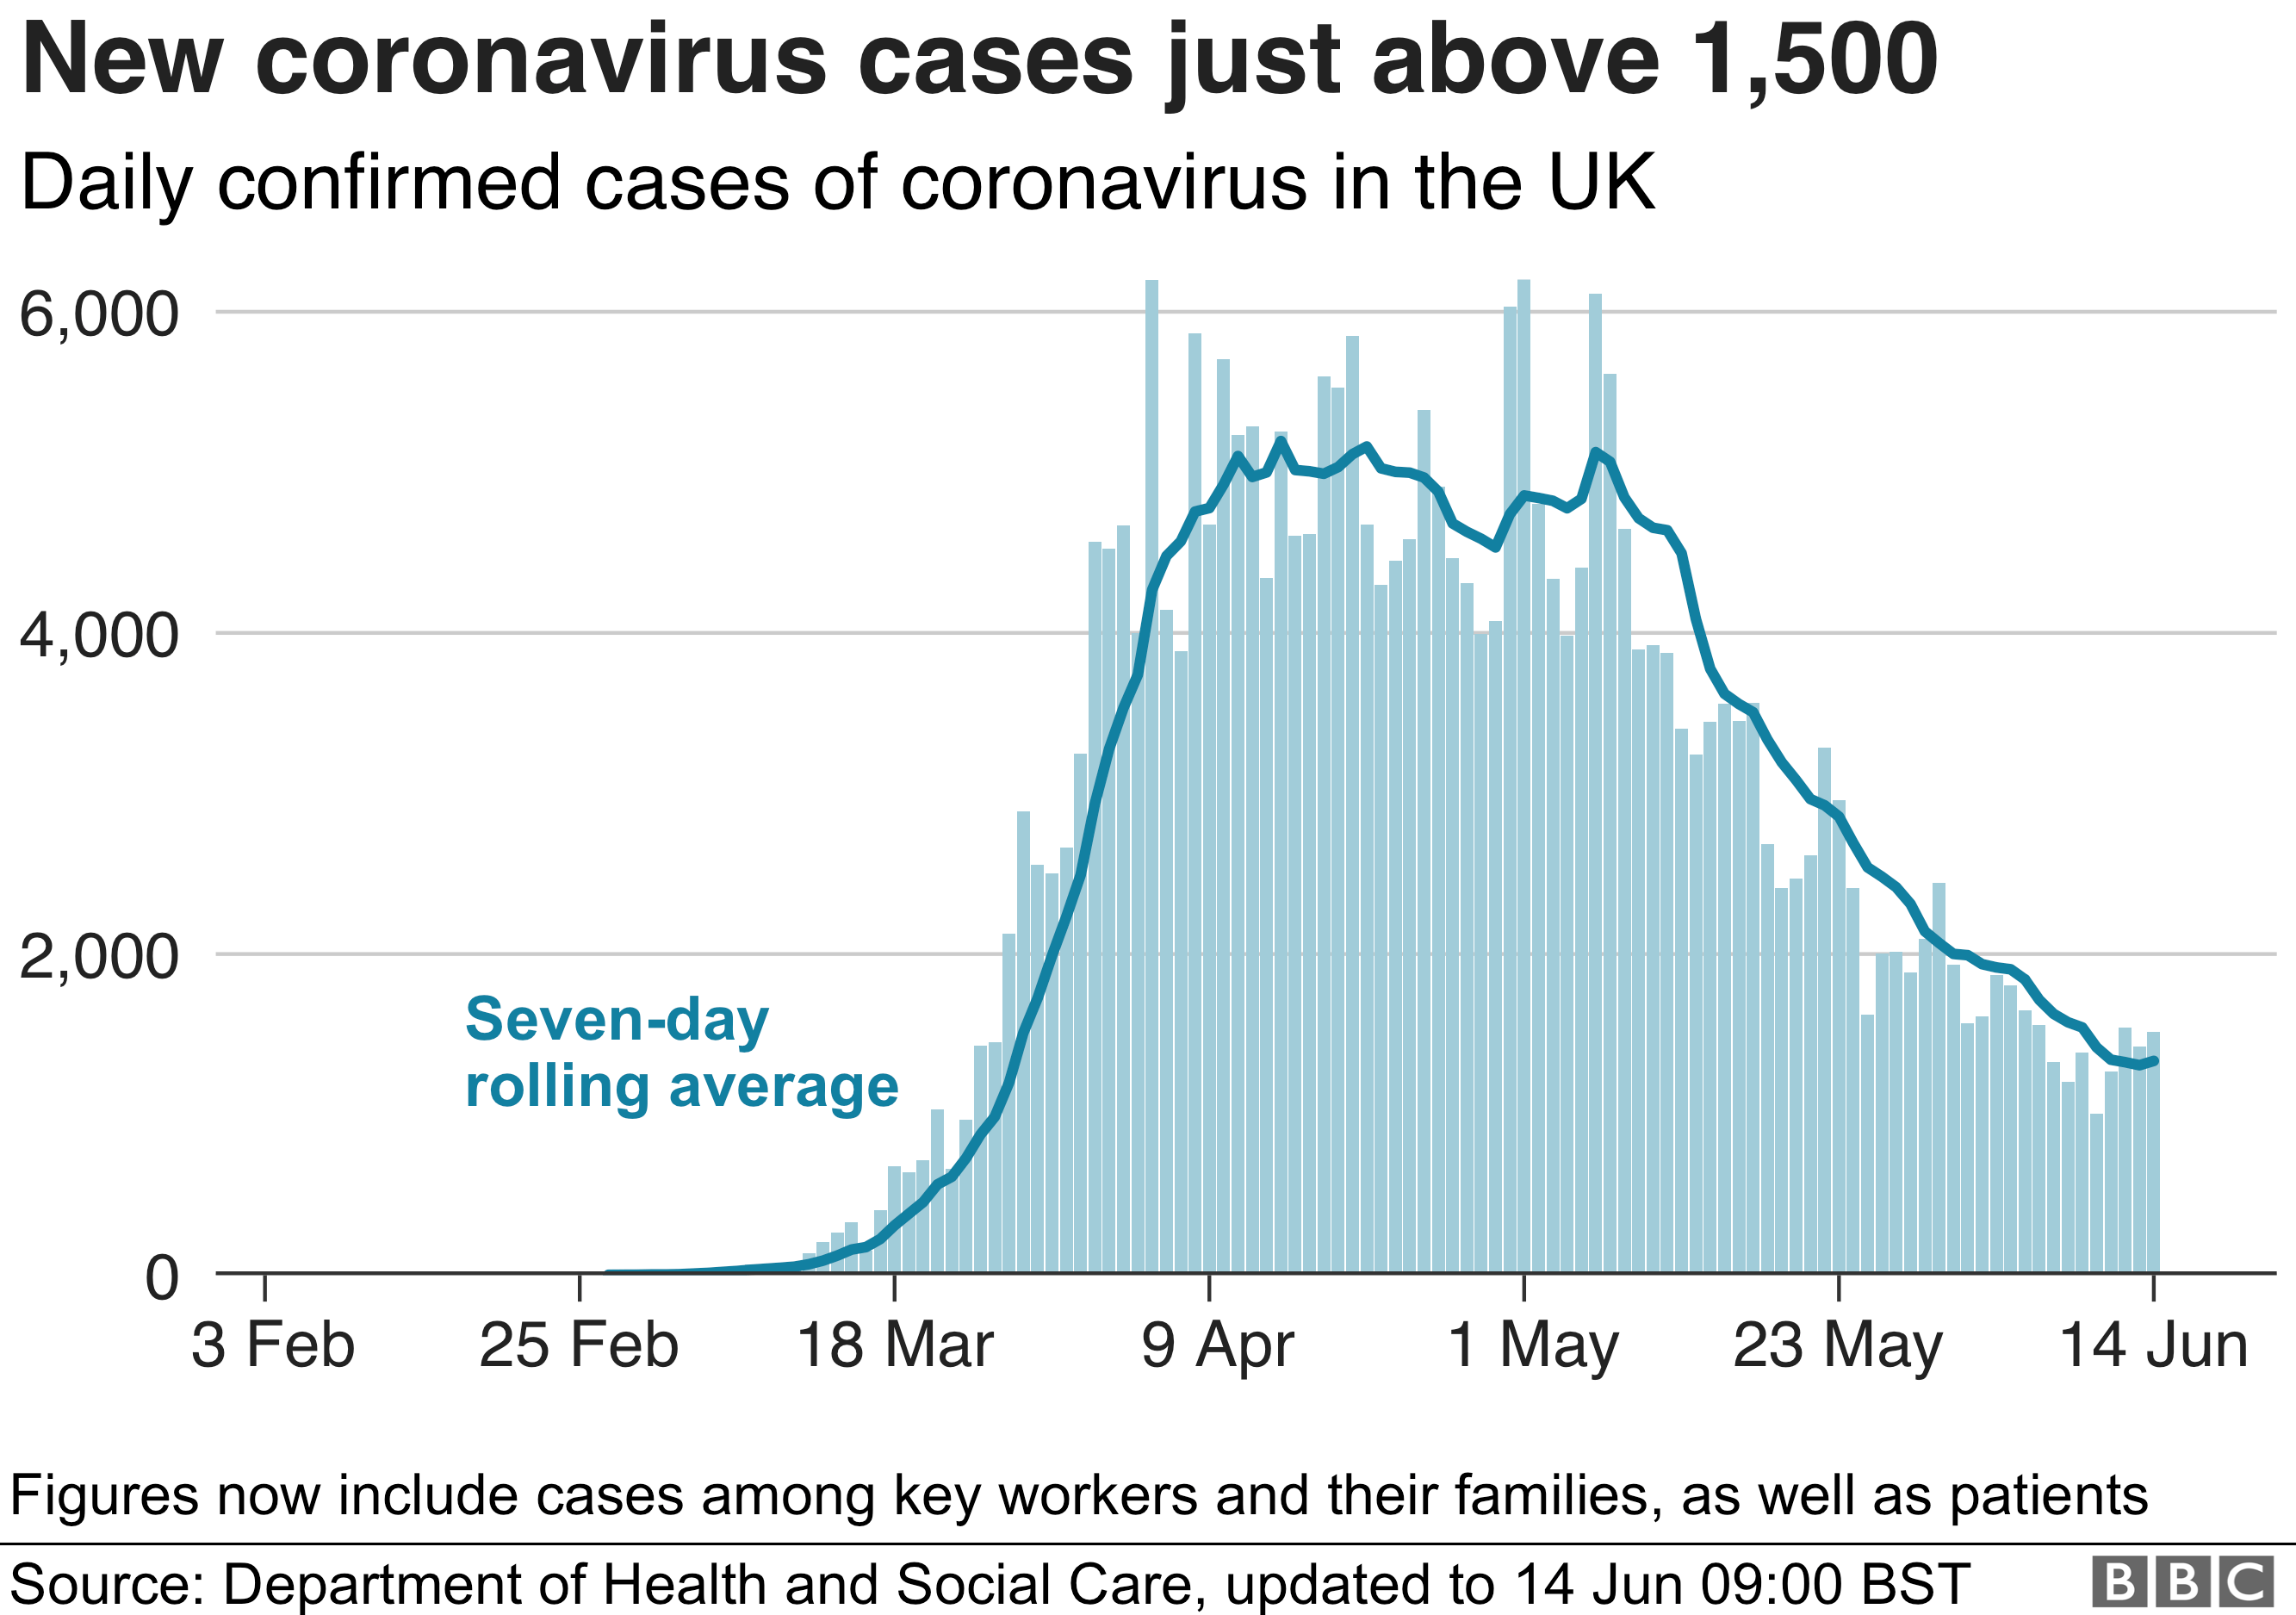 Chart showing daily new confirmed coronavirus cases and seven-day rolling average